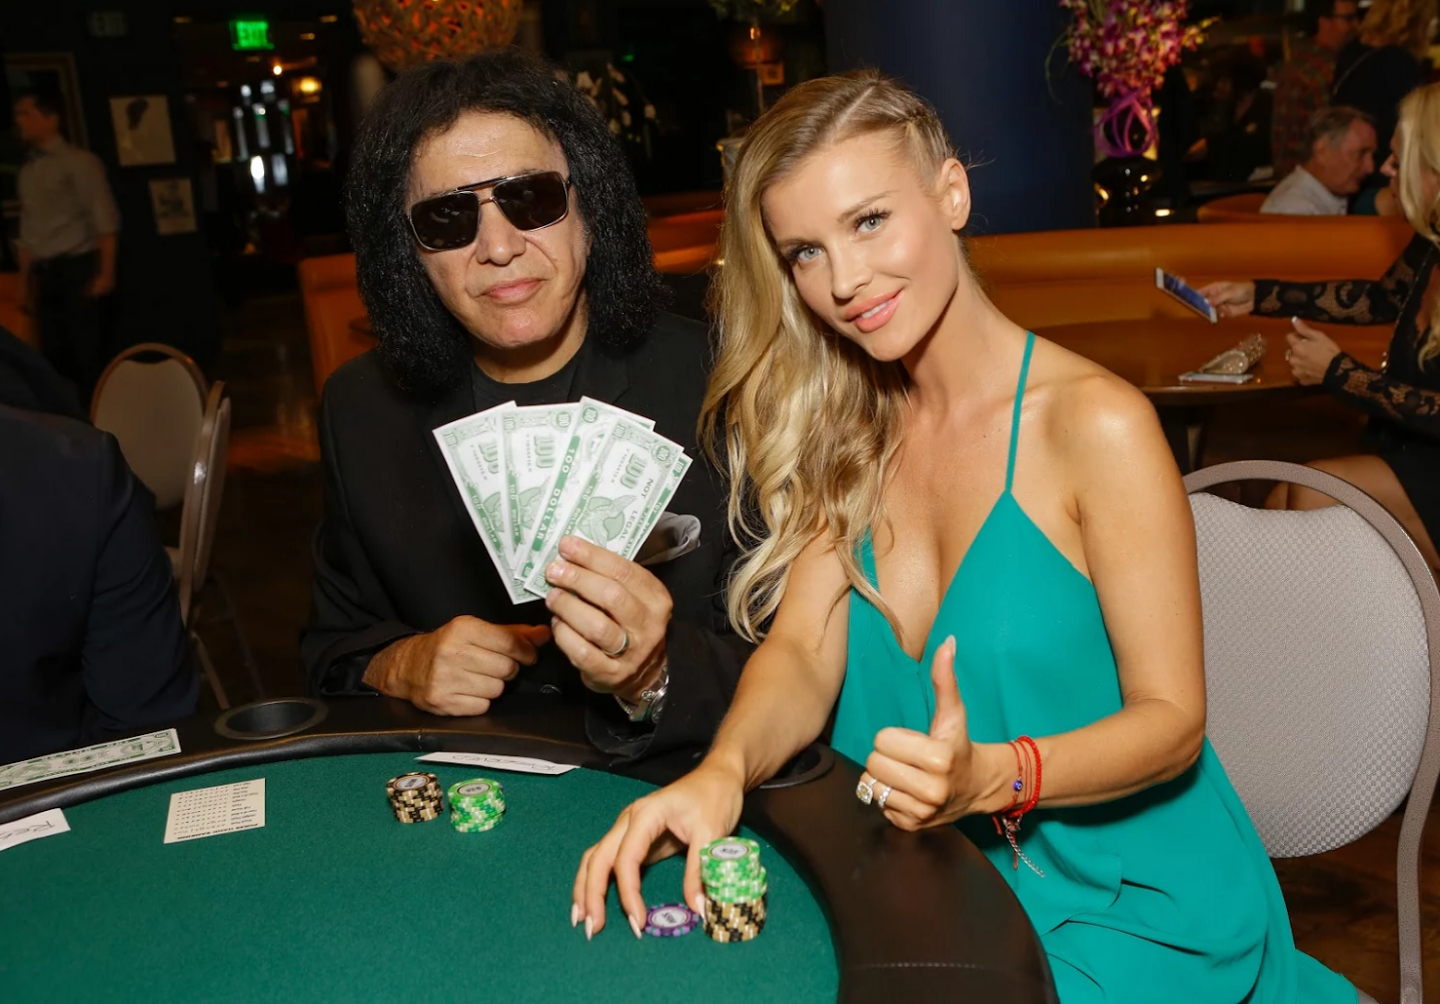 Rock legend Gene Simmons and supermodel Joanna Krupa were all smiles at the  Tower Cancer Research Foundation's    3rd Annual Ante Up for a Cancer Free Generation Poker Tournament and Casino Night  over the weekend  at   Riviera 31   at the  Sofitel Hotel Beverly Hills. Photo Credit: Tiffany Rose